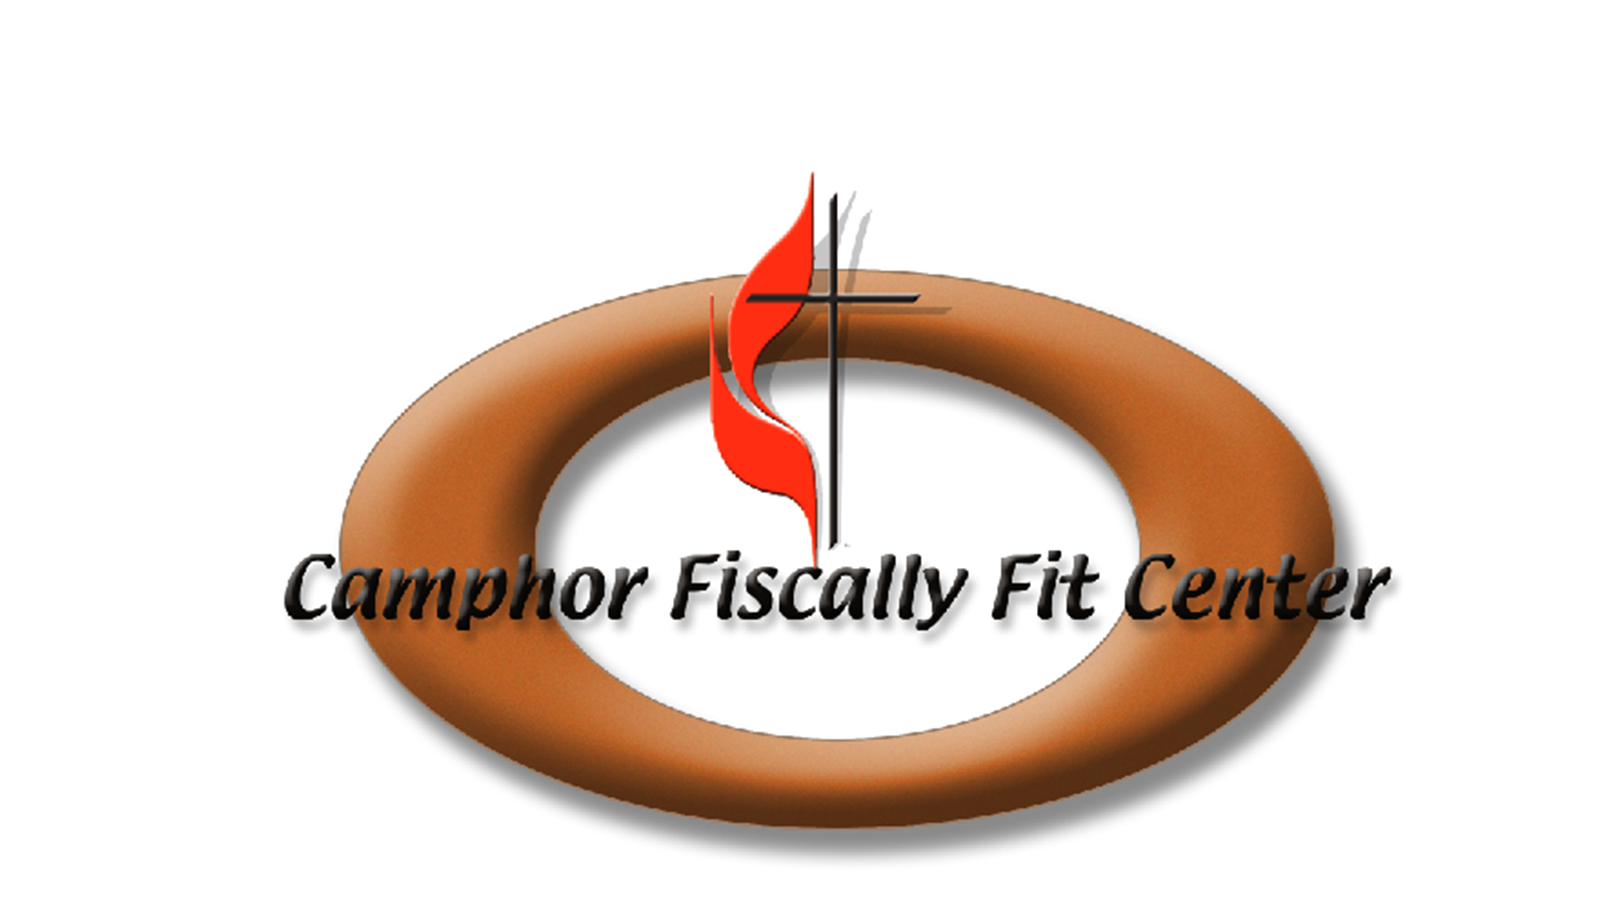 Camphor Fiscally Fit Center logo